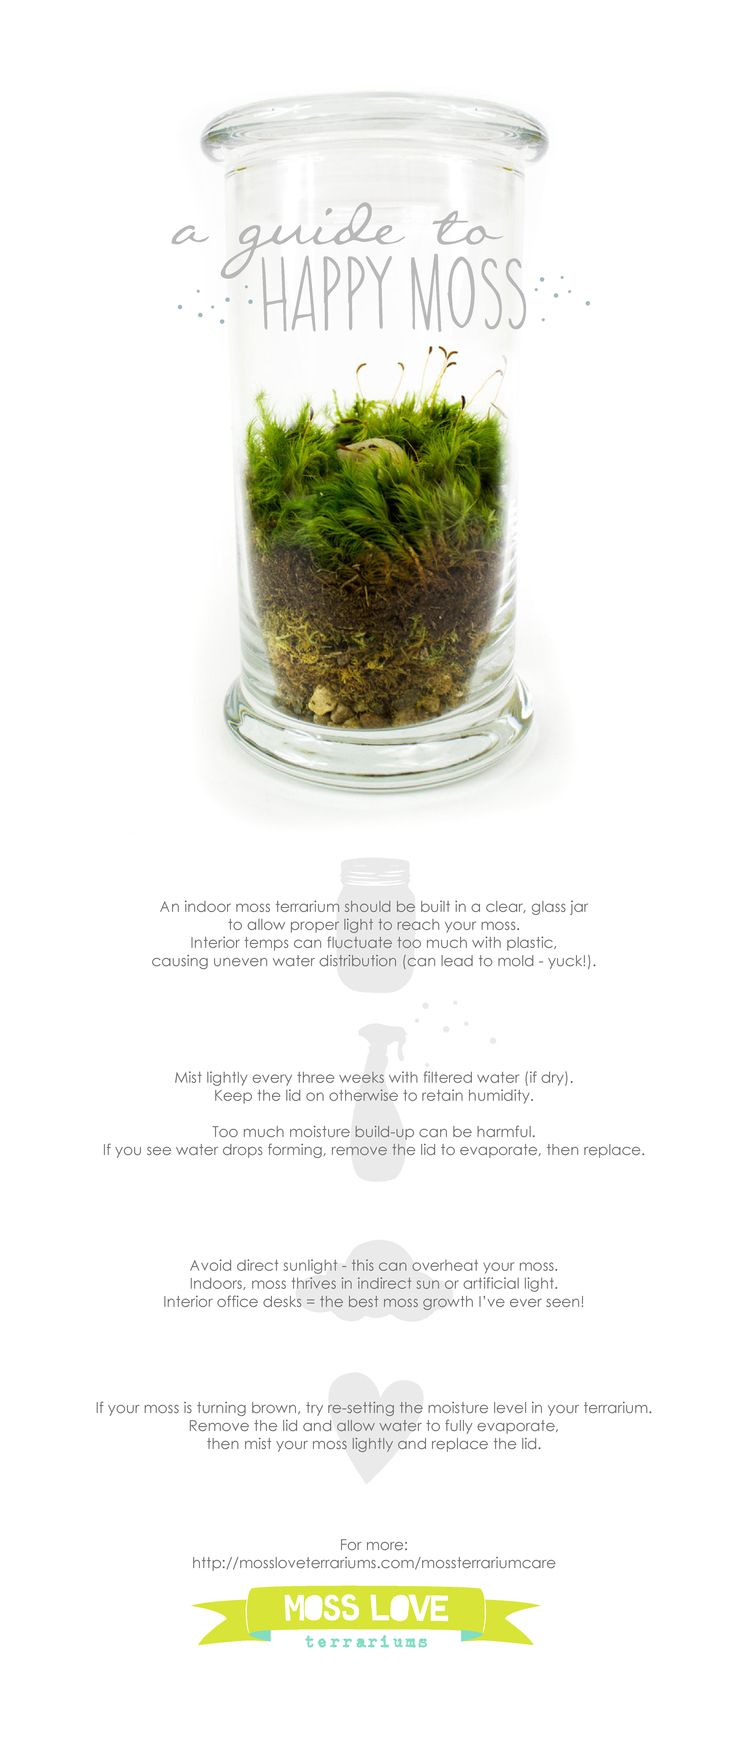 A guide to happy moss moss love terrariums blog moss terrarium